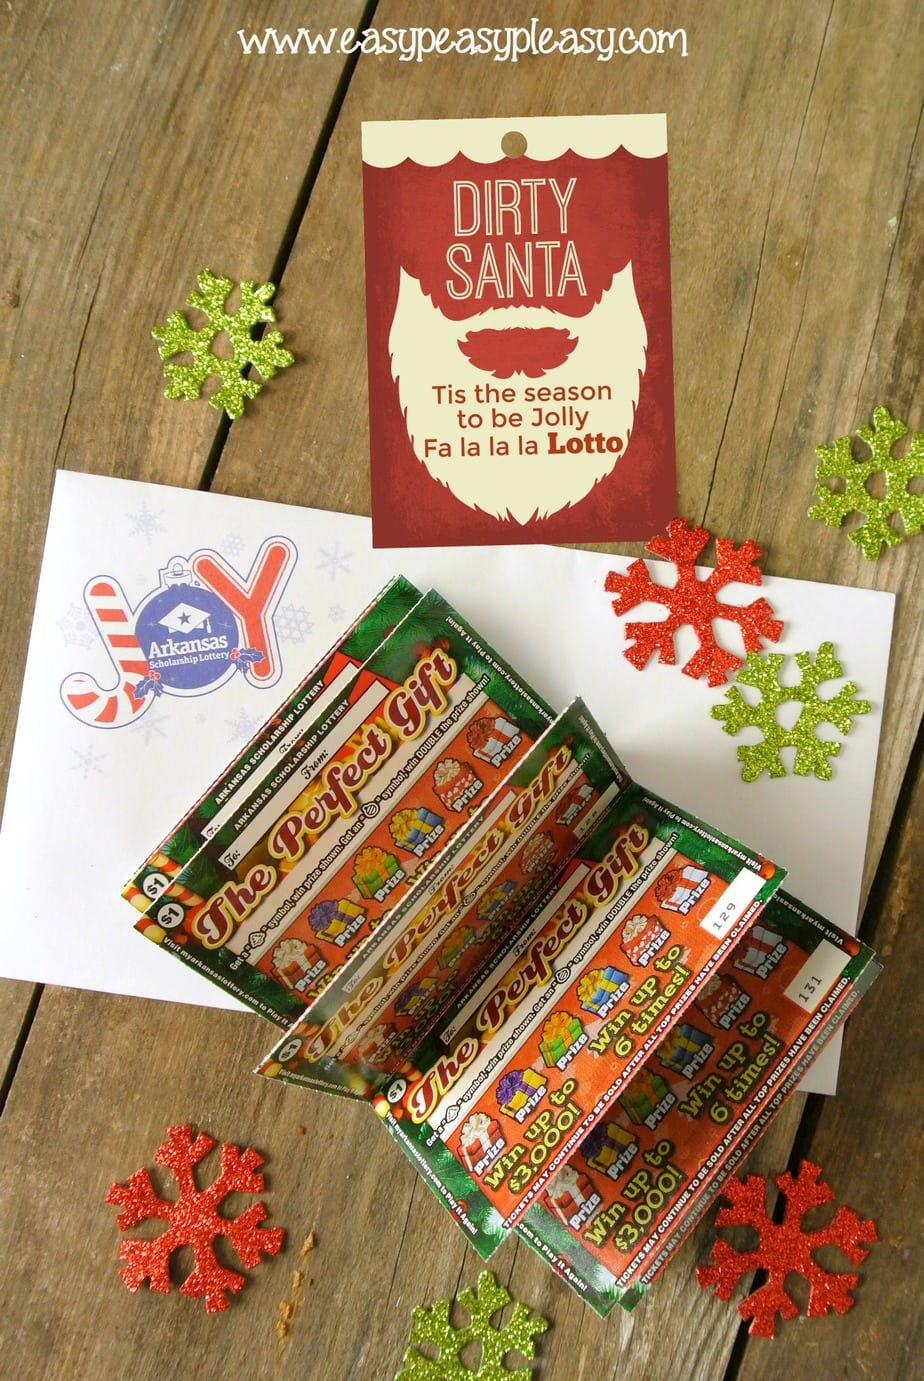 Arkansas Scholarship Lottery Tickets make the perfect Dirty Santa Gift. Come grab some free printable Christmas Gift Tags.